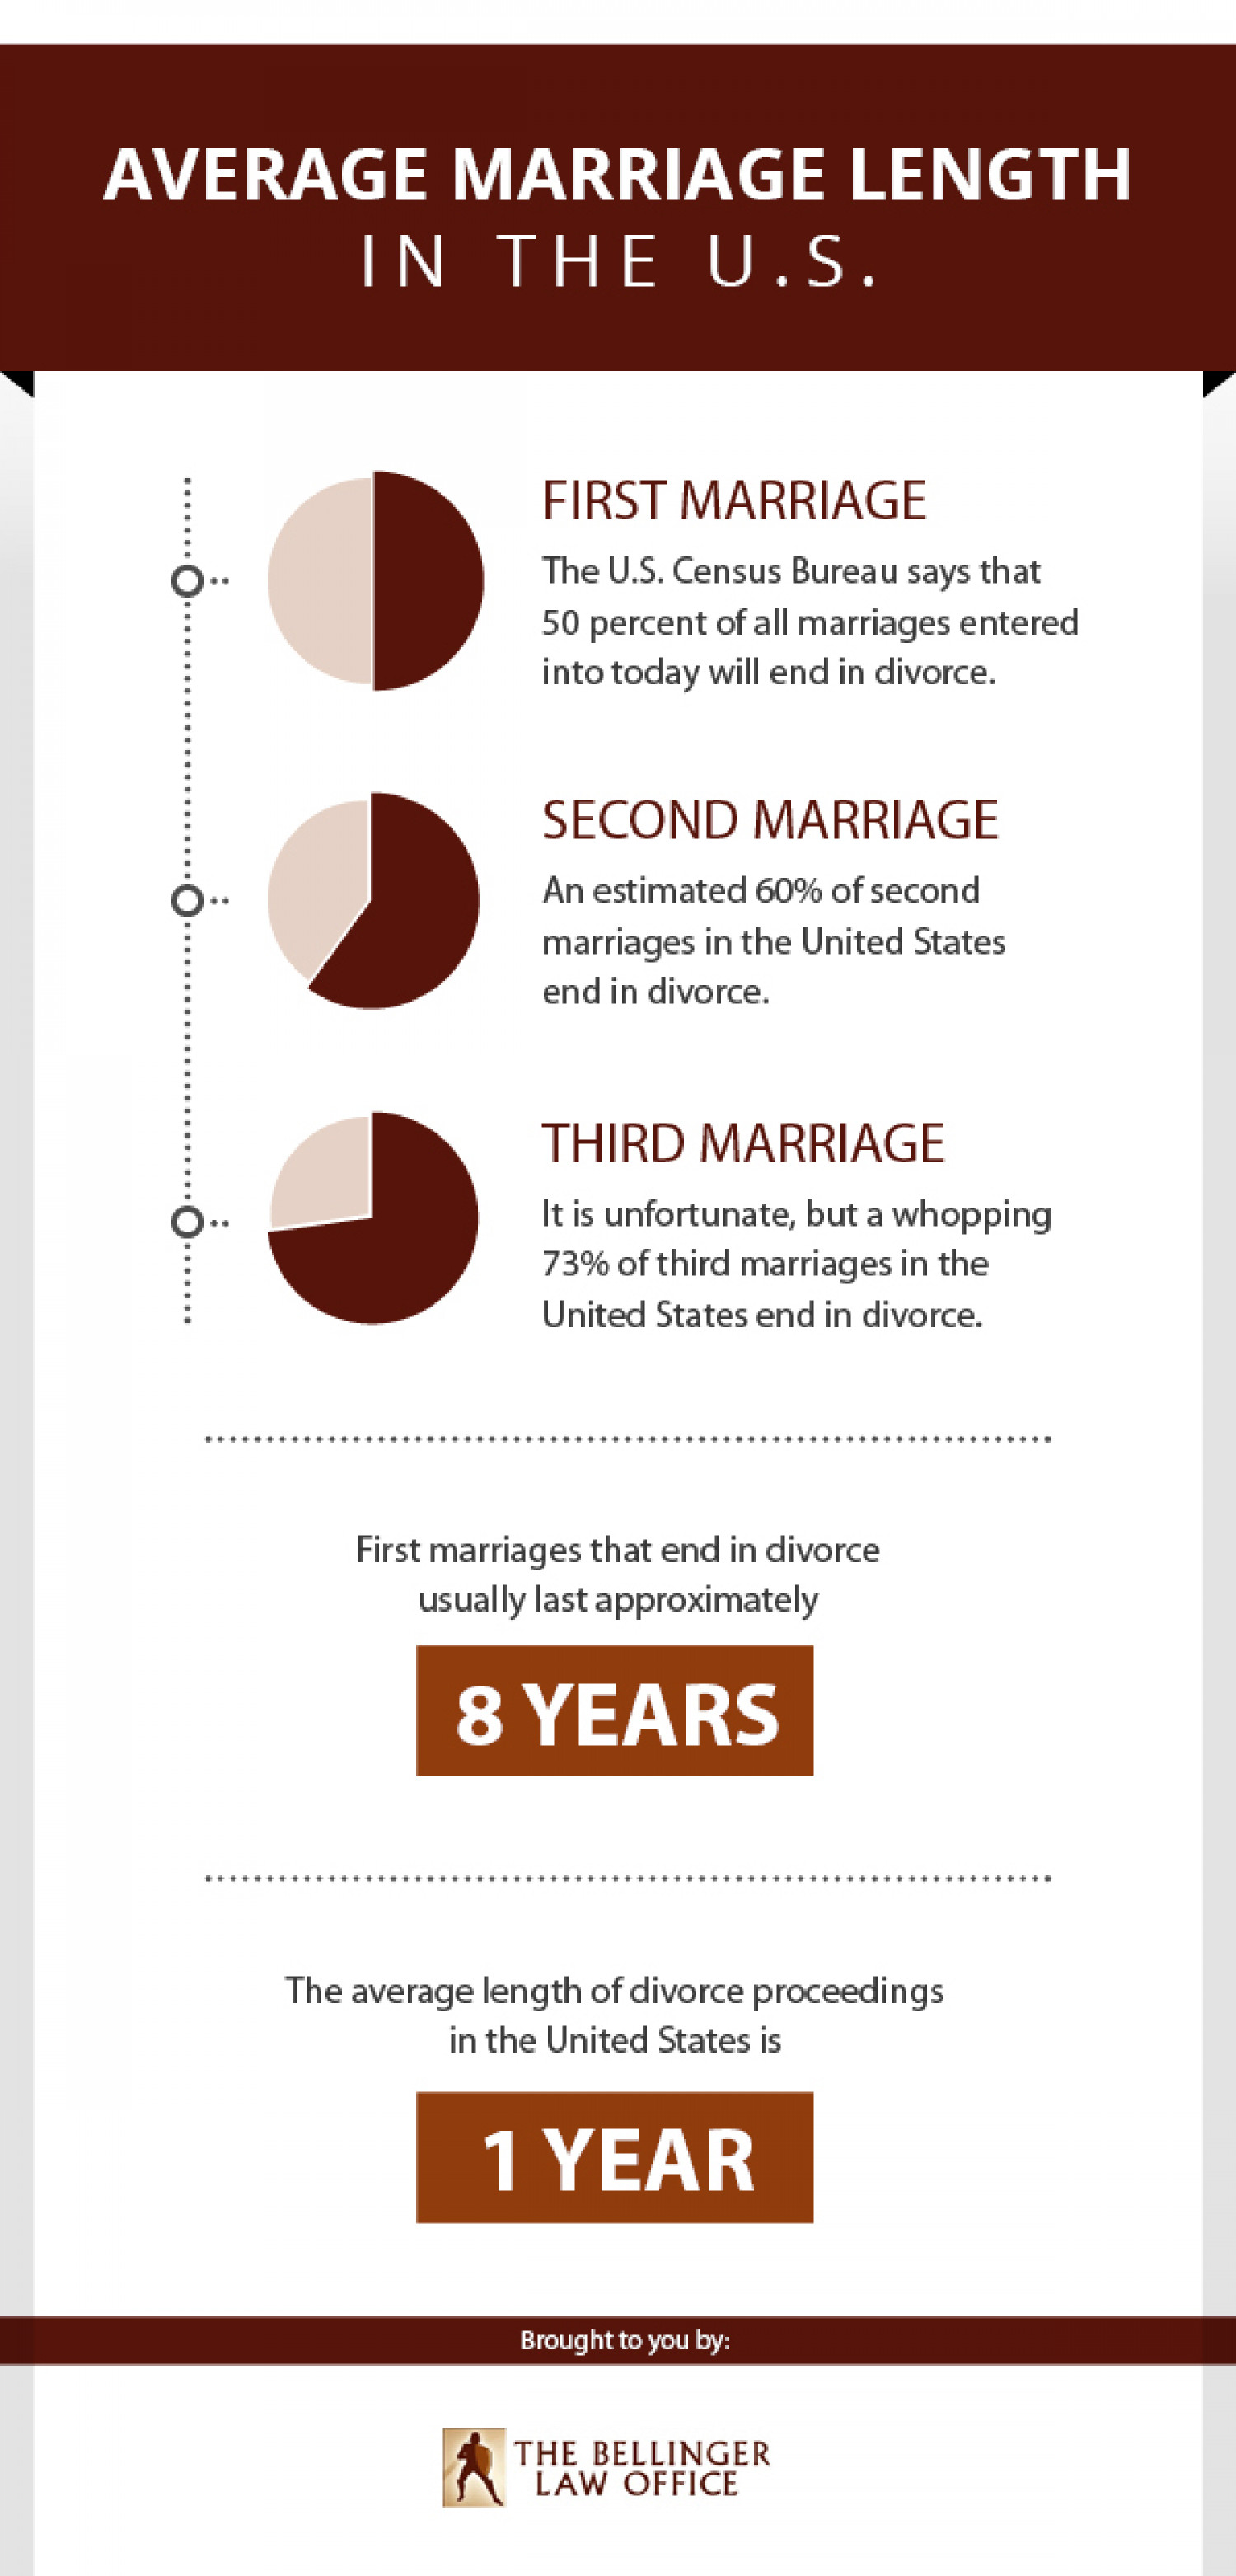 Average Marriage Length in the U.S. Infographic